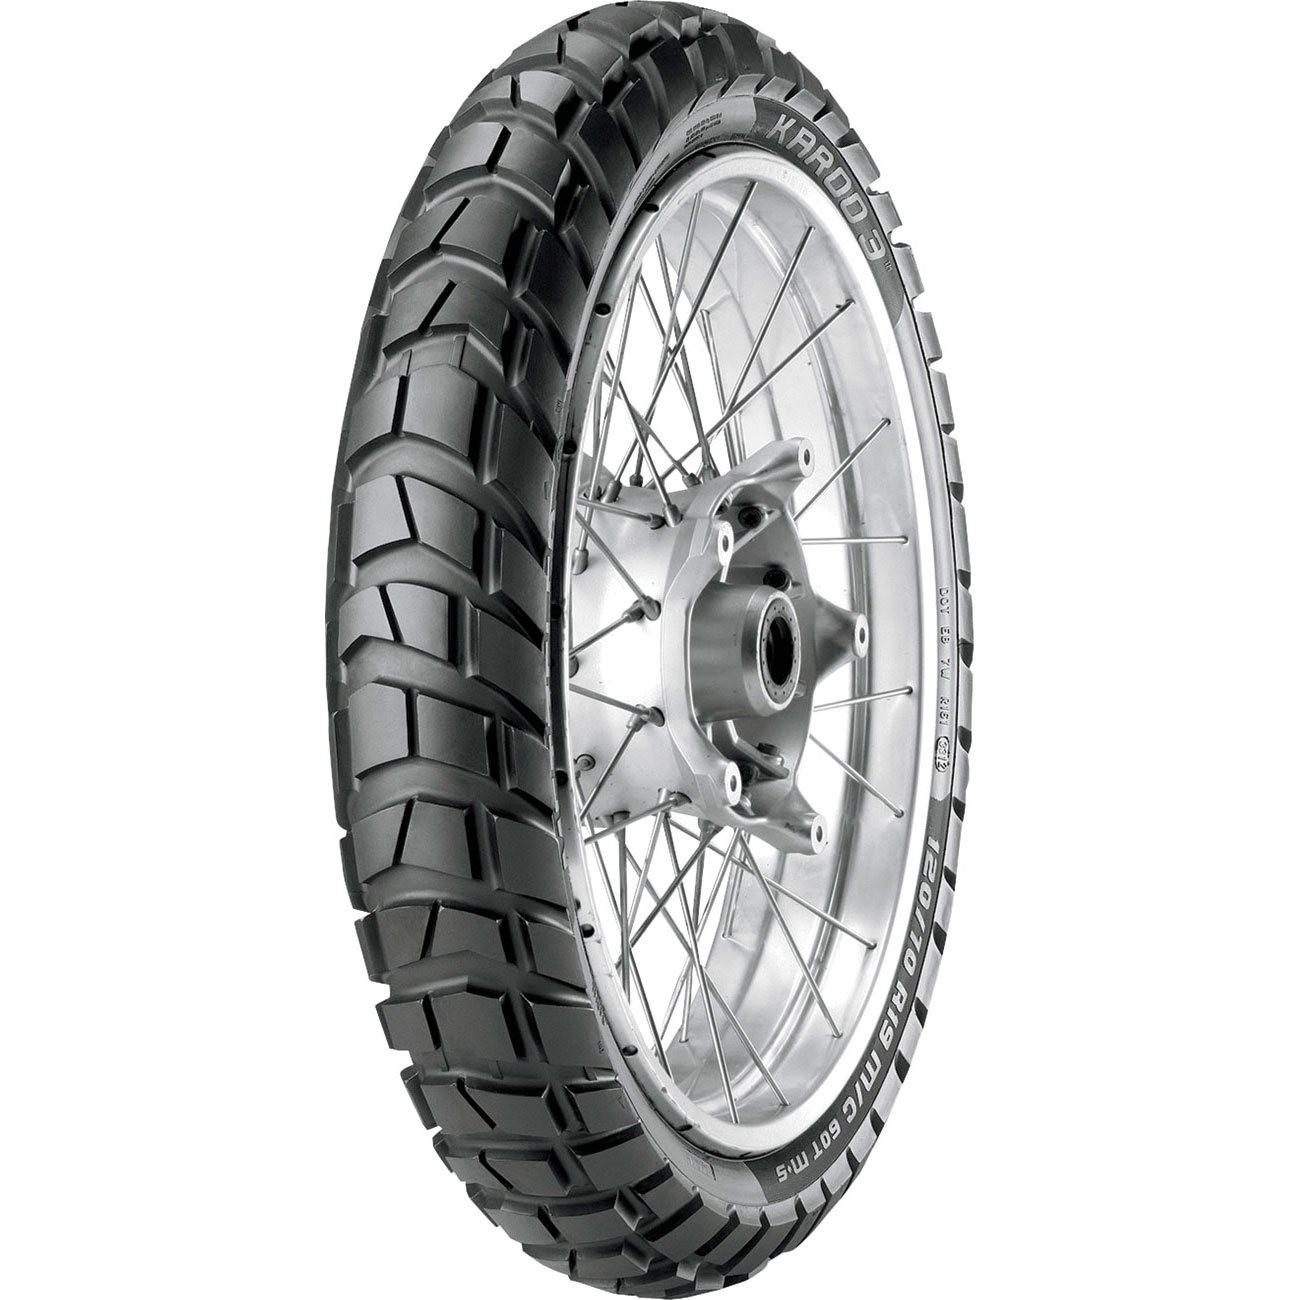 Metzeler Karoo 3 120/70 ZR 19 Tubeless 60 T Front Two-Wheeler Tyre